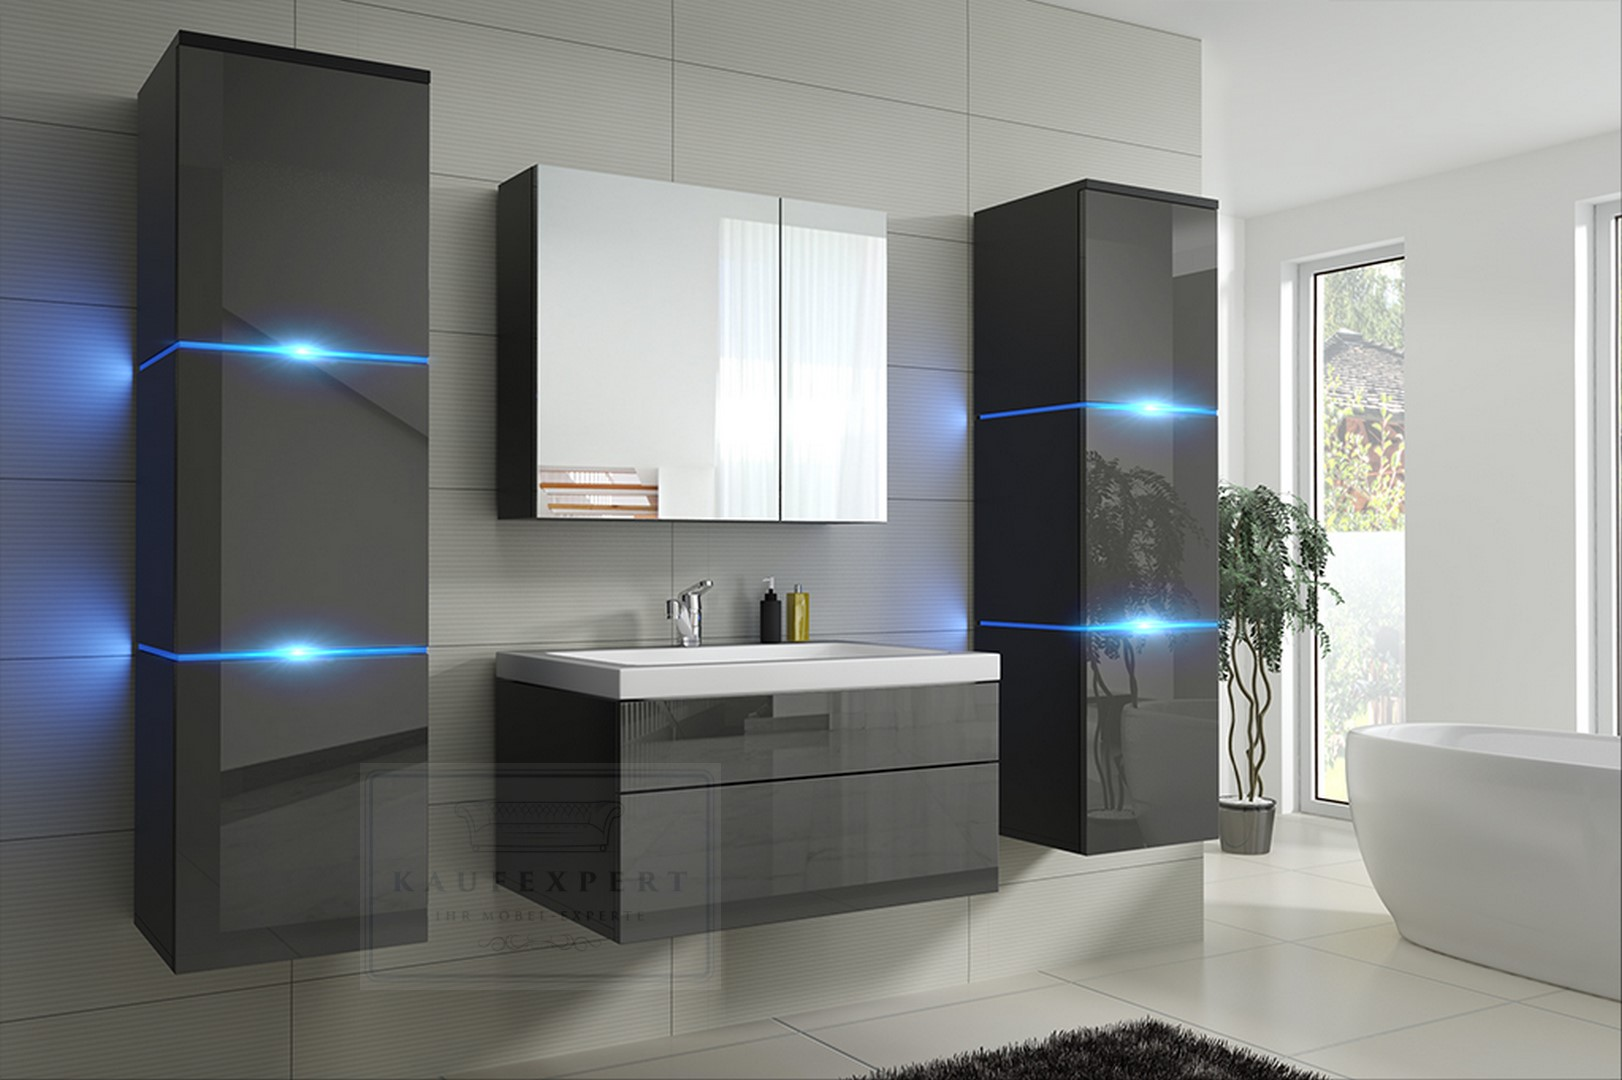 kaufexpert badm bel set lux new grau hochglanz schwarz keramik waschbecken badezimmer led. Black Bedroom Furniture Sets. Home Design Ideas